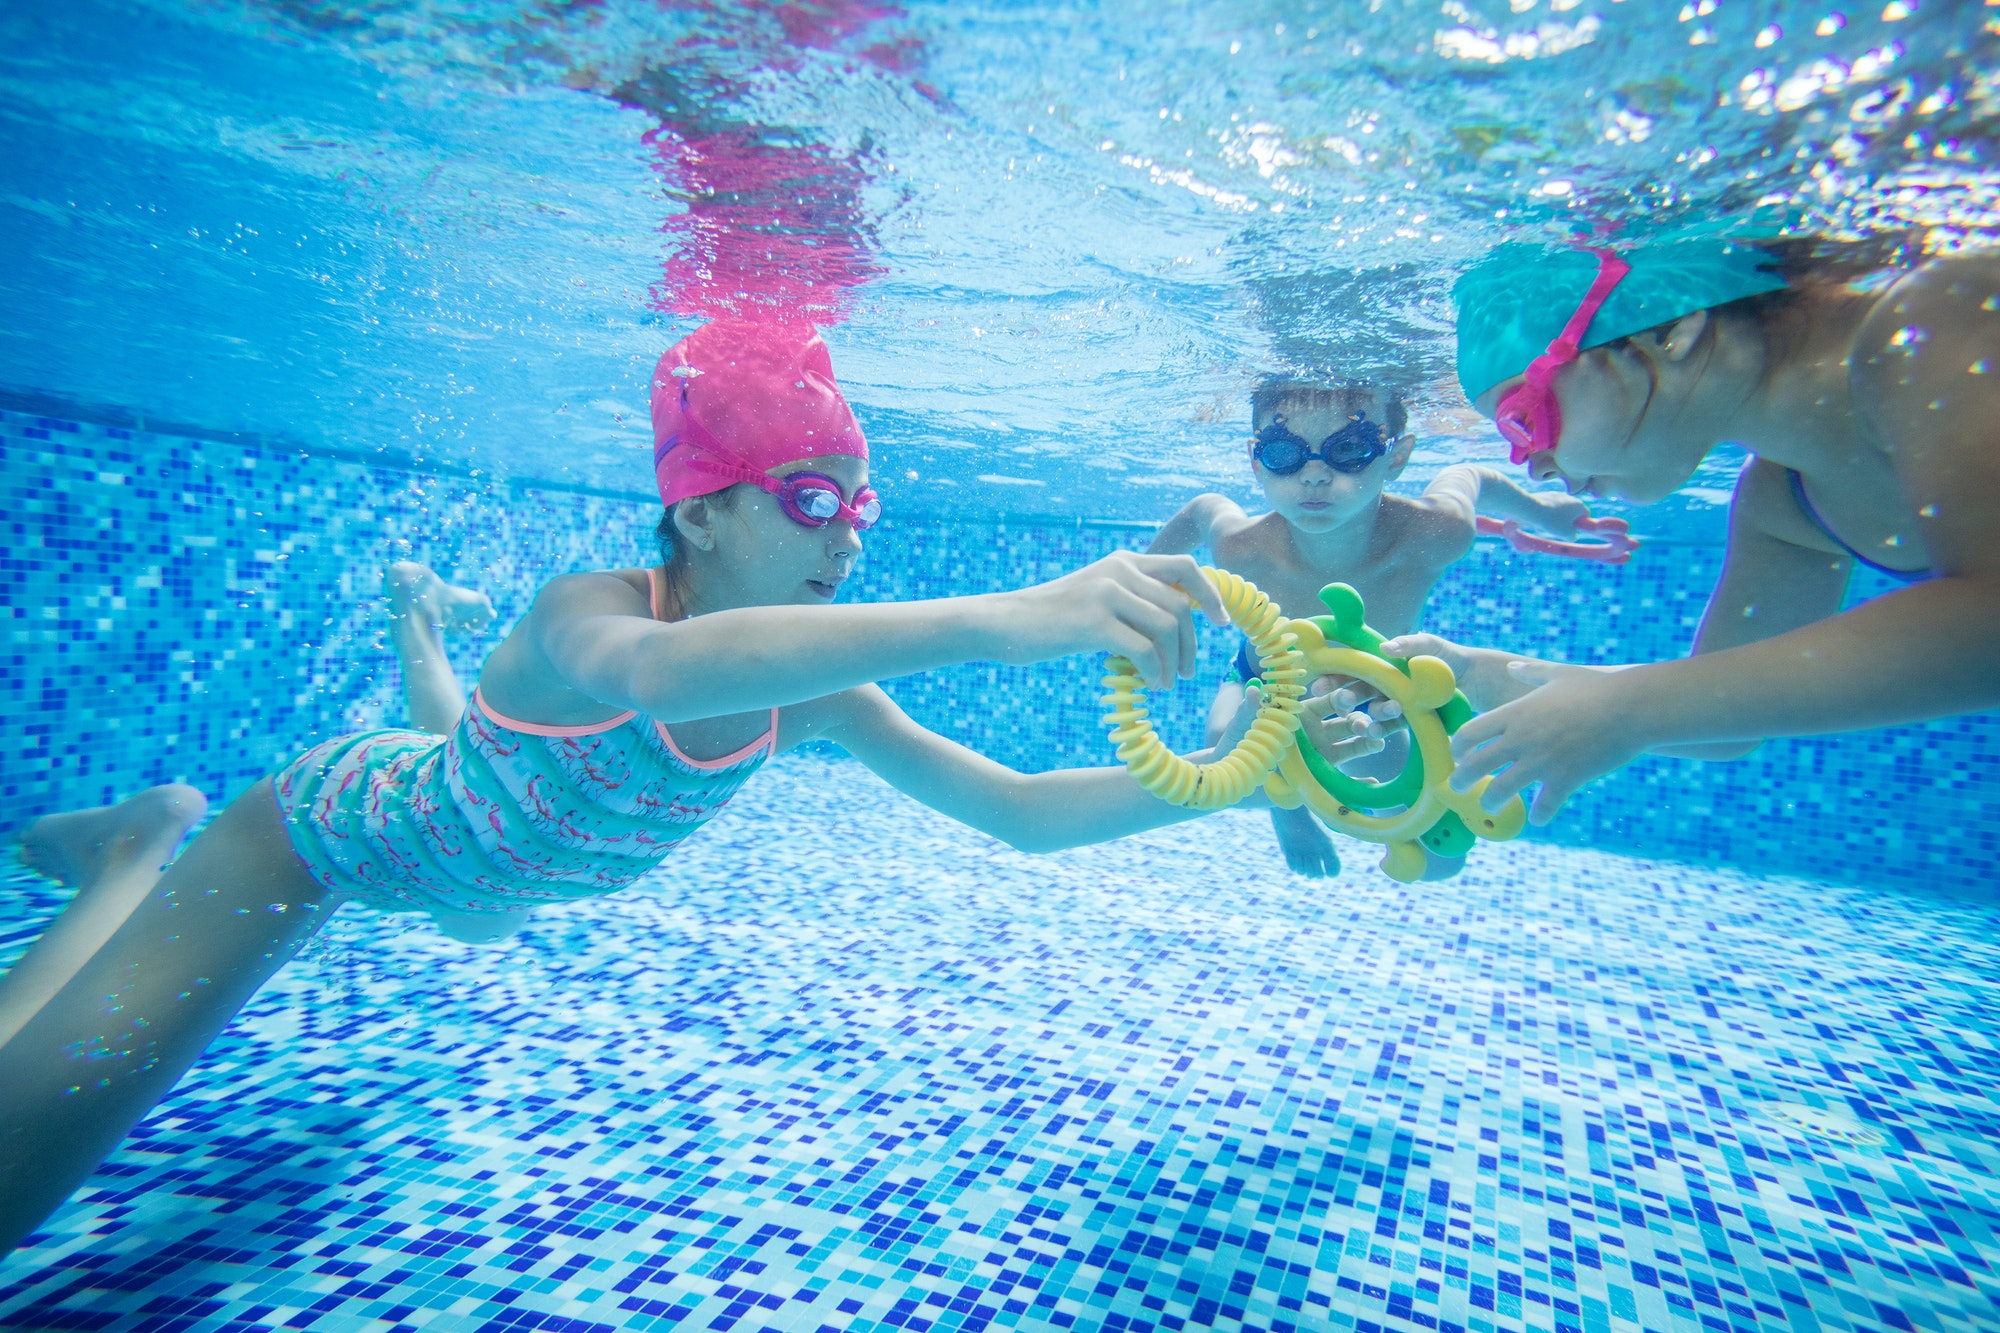 Kids swimming underwater and playing with toys